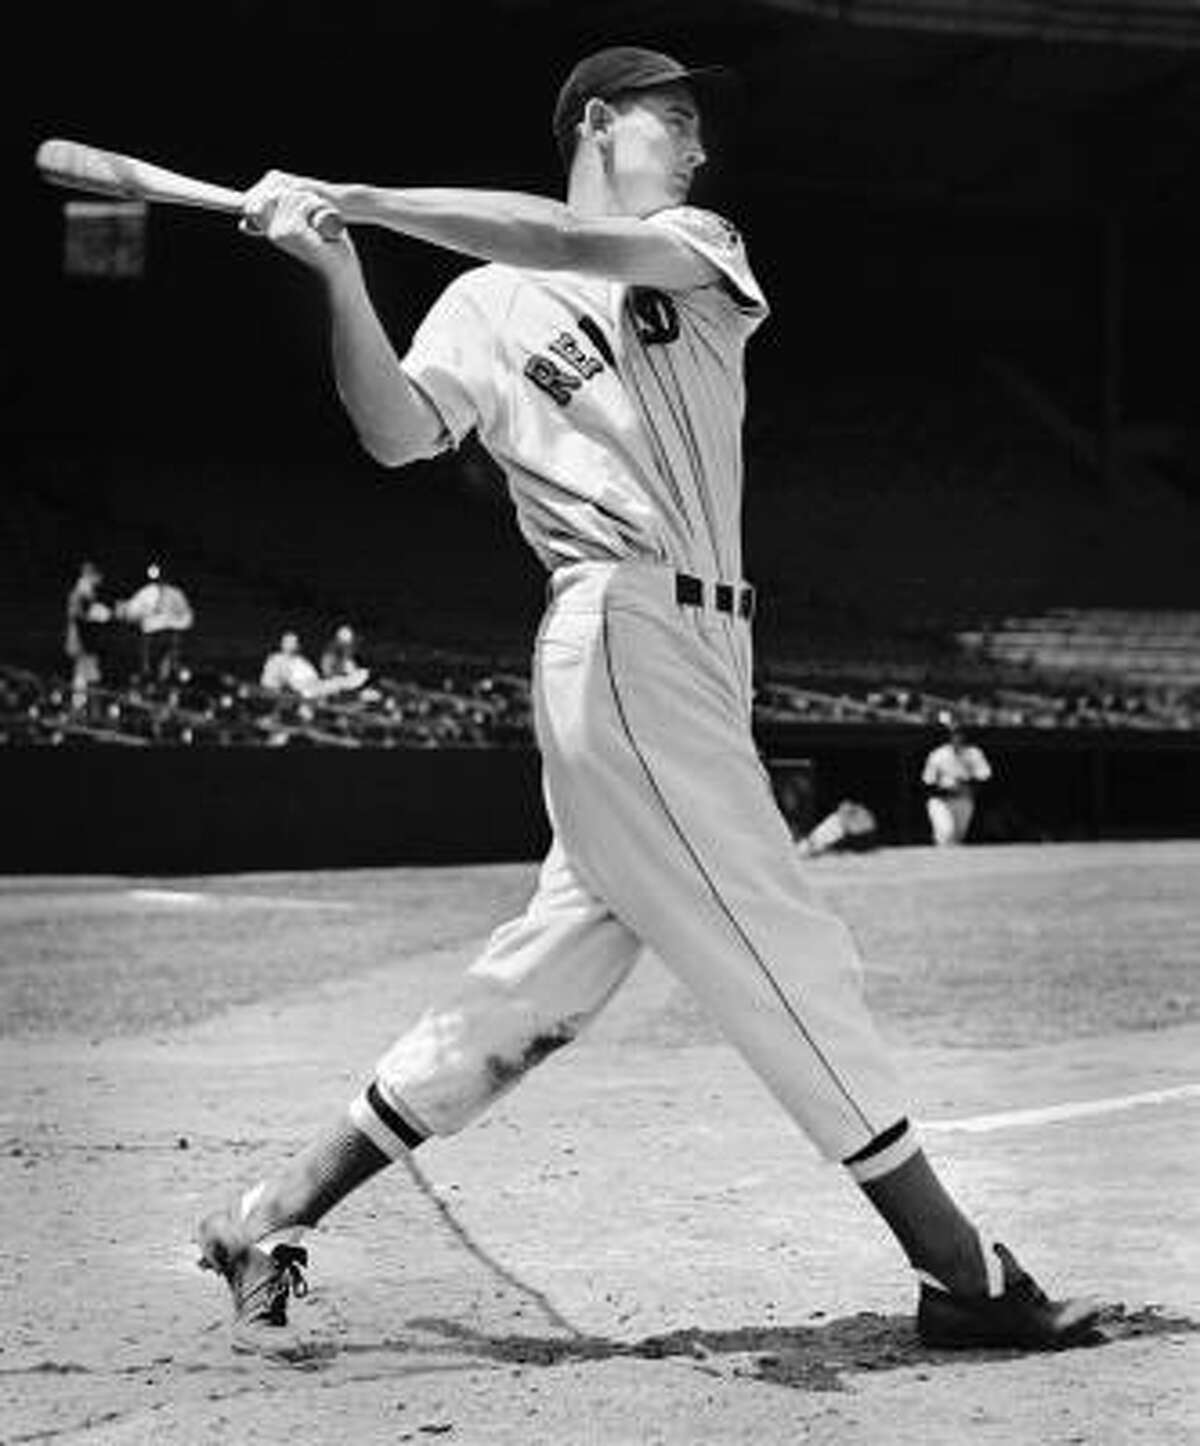 Boston Red Sox outfielder Ted Williams is baseball's last .400 hitter and the subject of a new documentary on HBO.